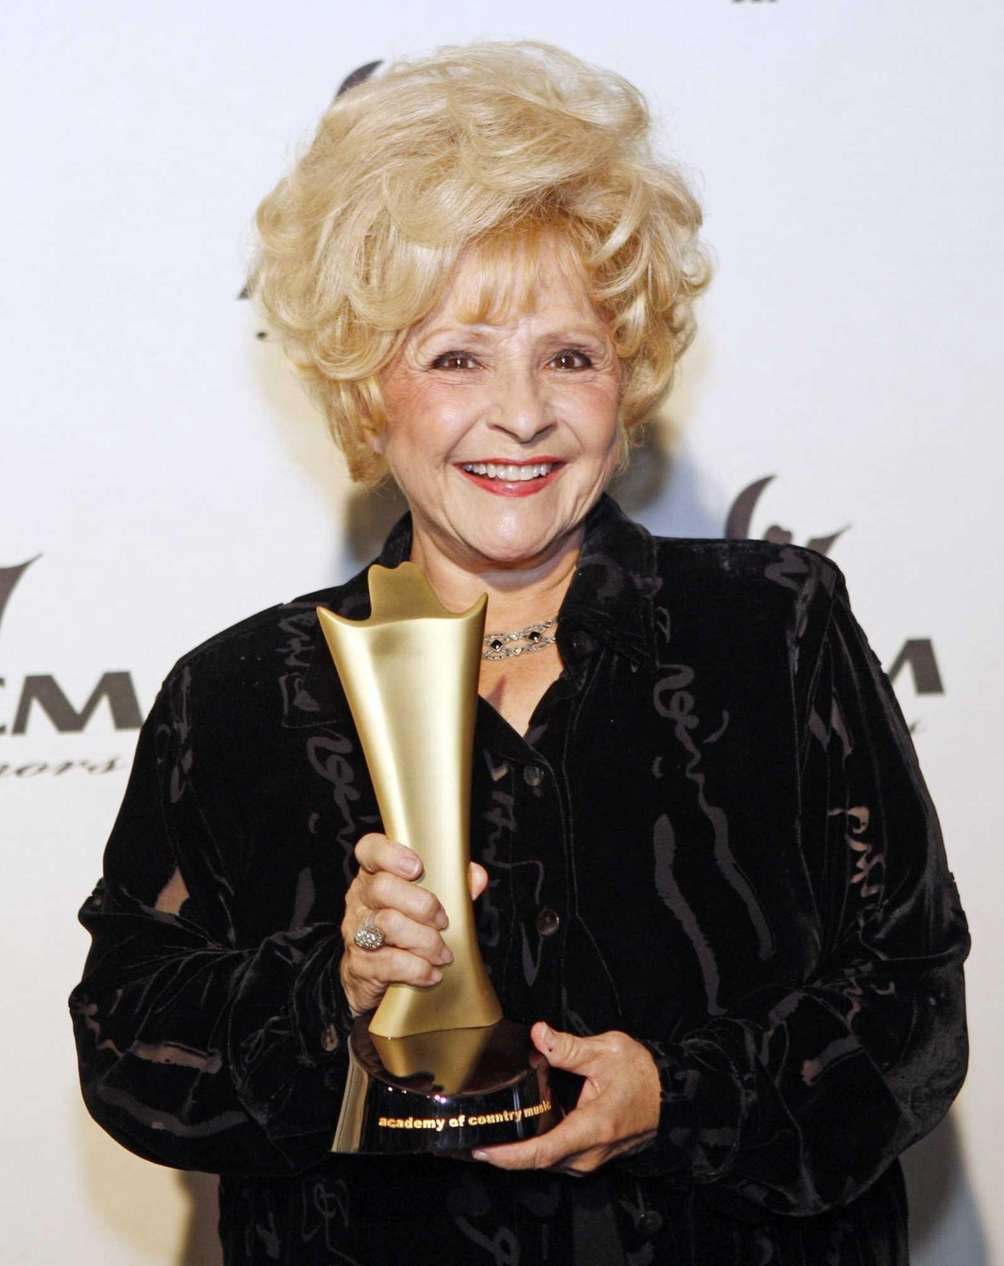 Country singer Brenda Lee was a top-charting icon